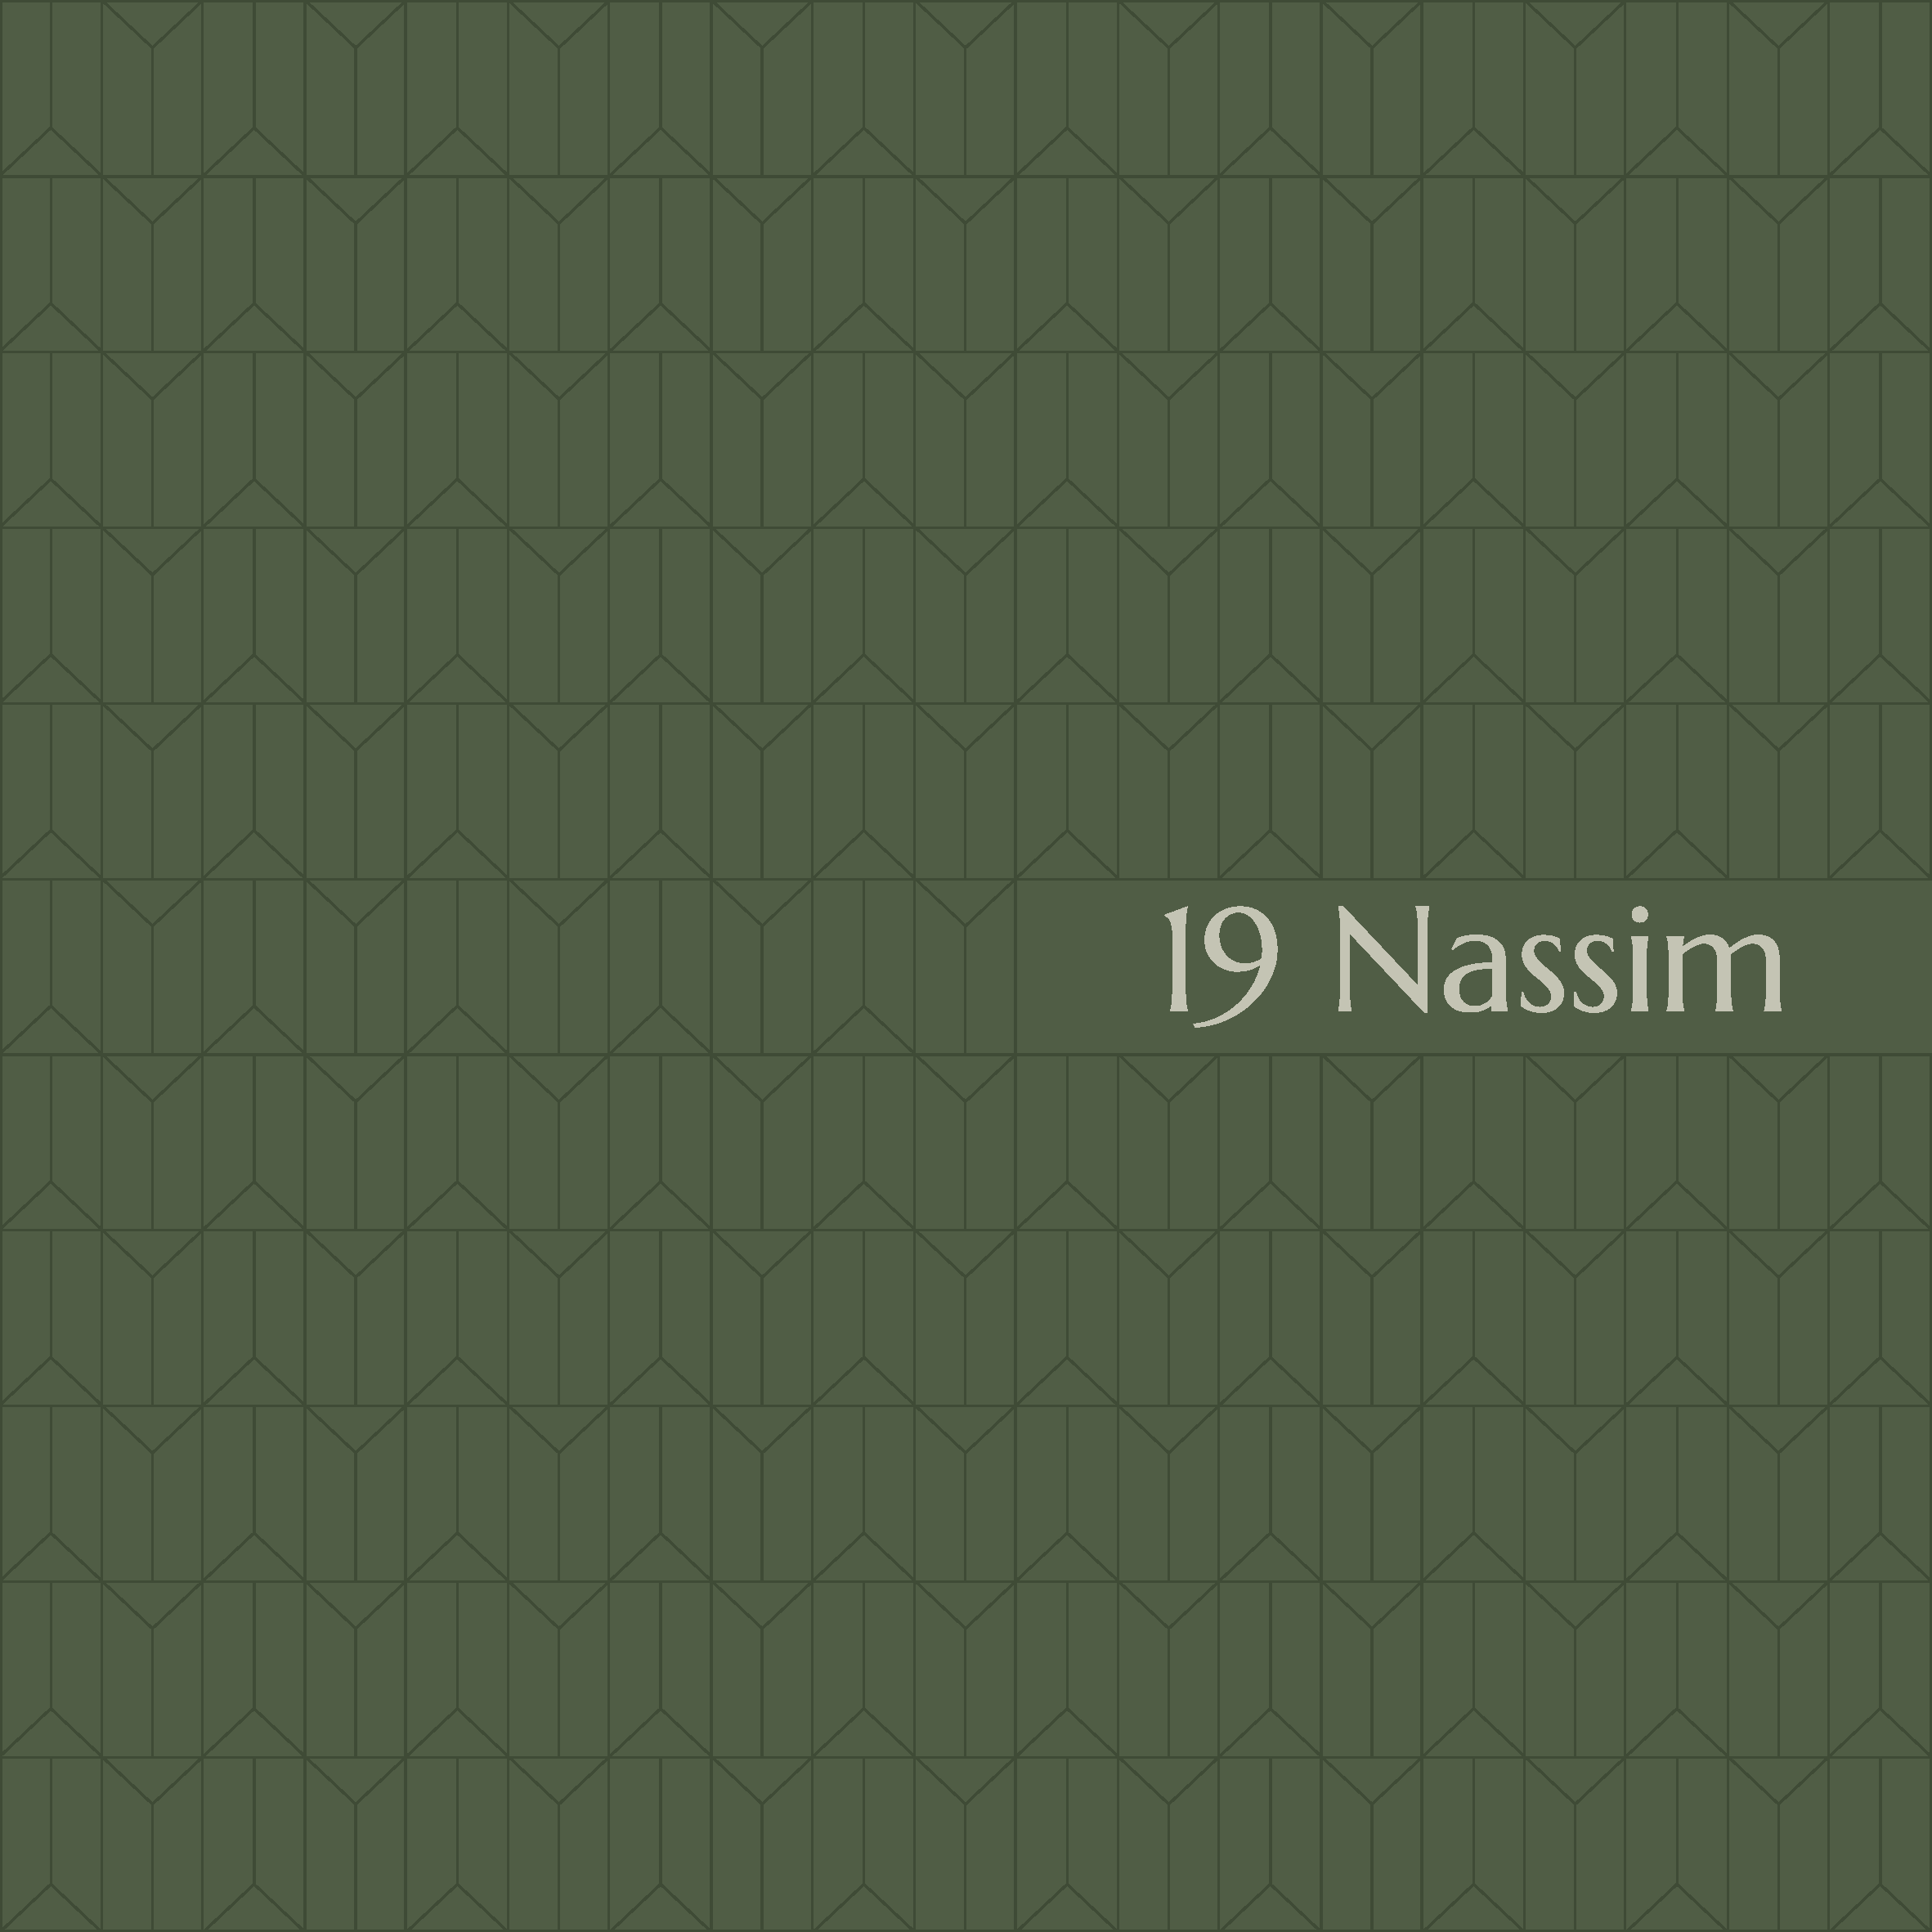 19-Nassim-brochure-Nassim-hill-condo-cover-page-by-keppel-singapore